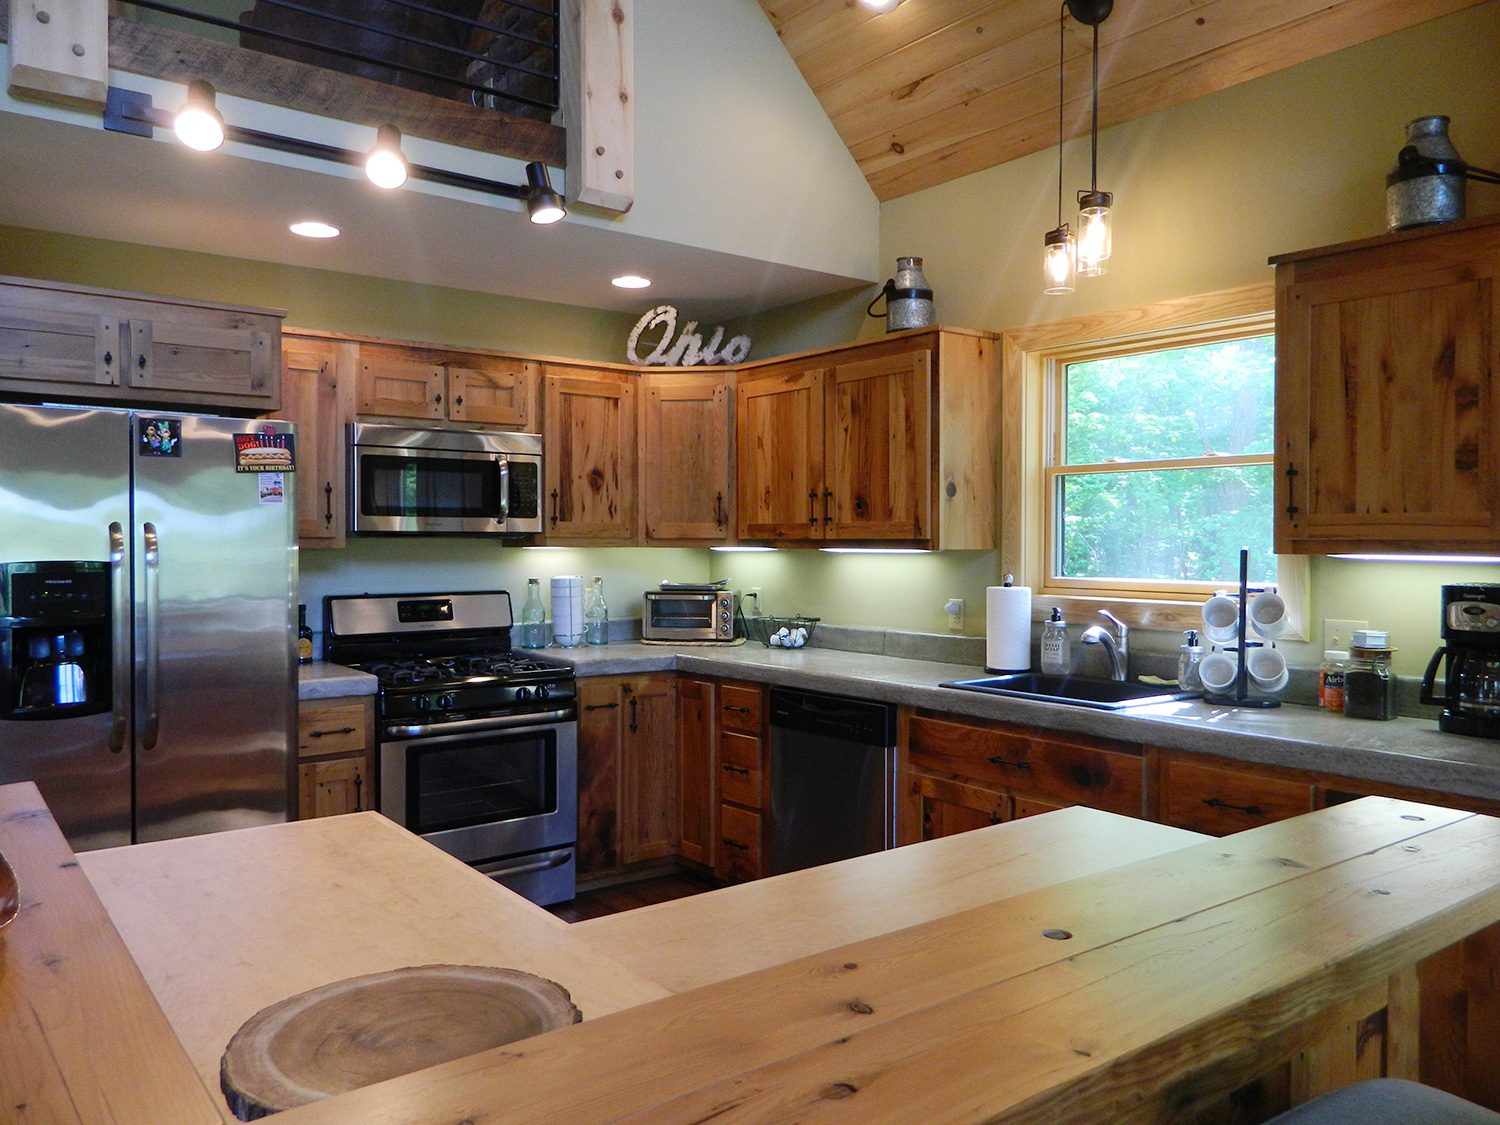 120 Yr. Old Reclaimed Wood Cabinets & 120 Yr. Old Reclaimed Wood Cabinets | Lofty Mountain Homes